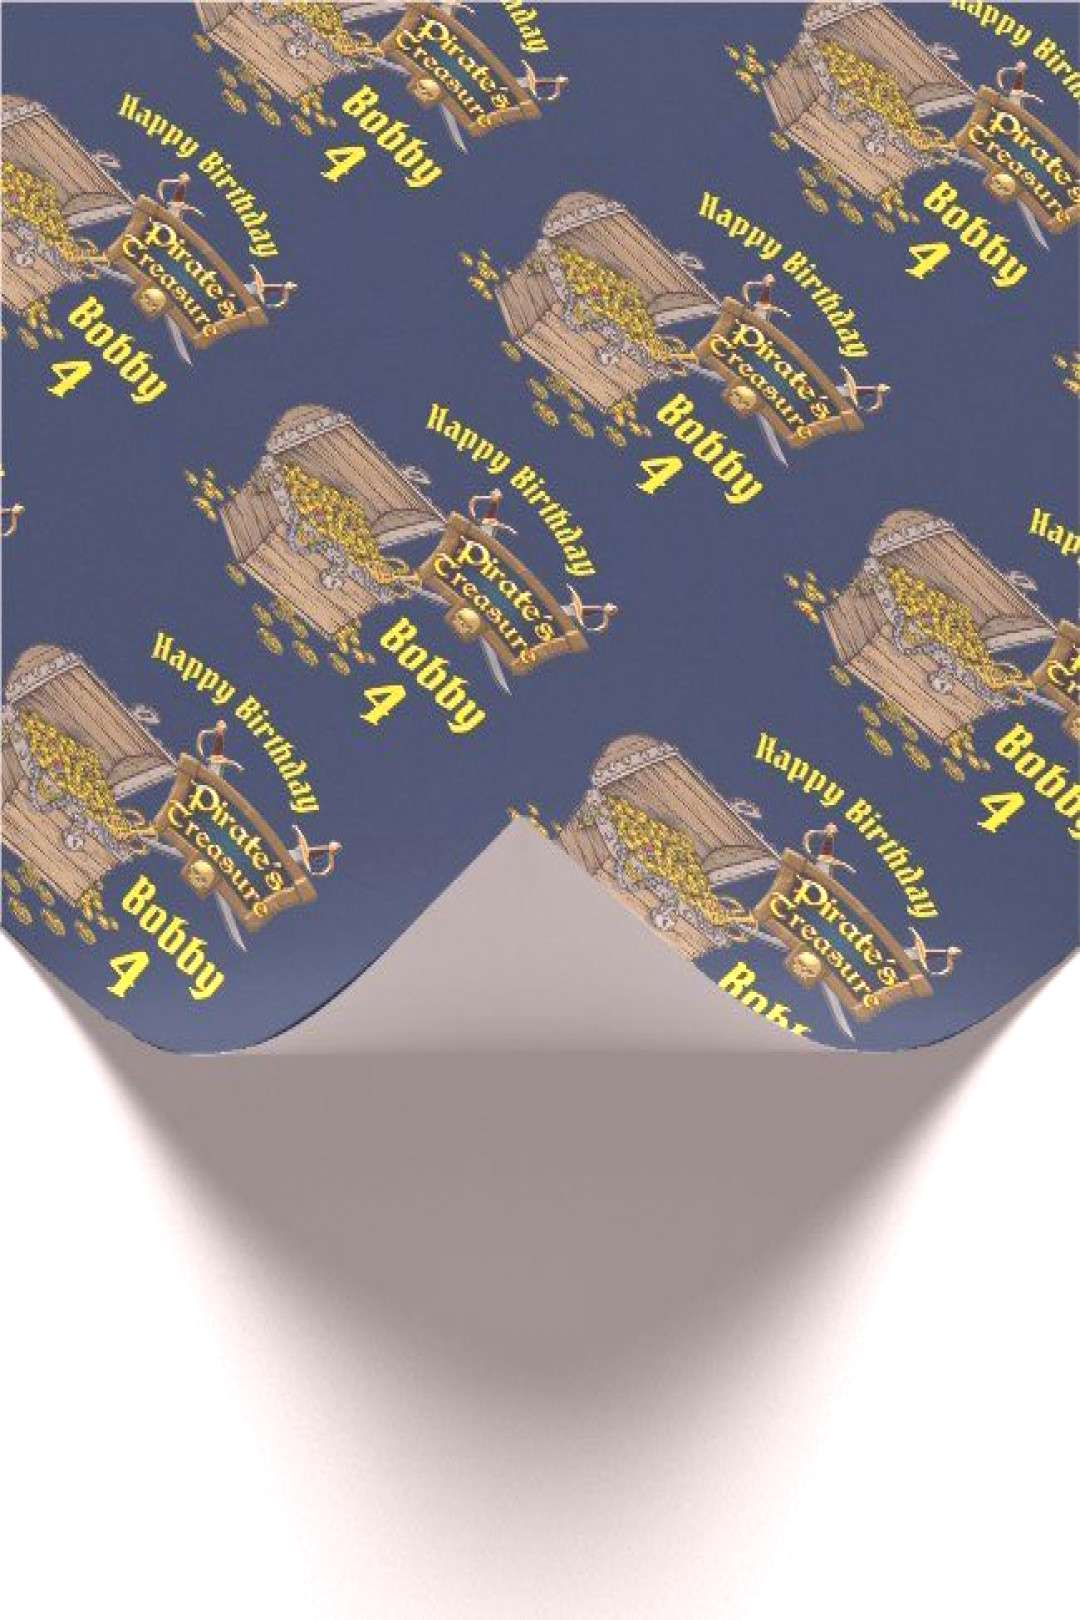 Personalize Birthday Boys Name Pirates Treasure Wrapping Paper